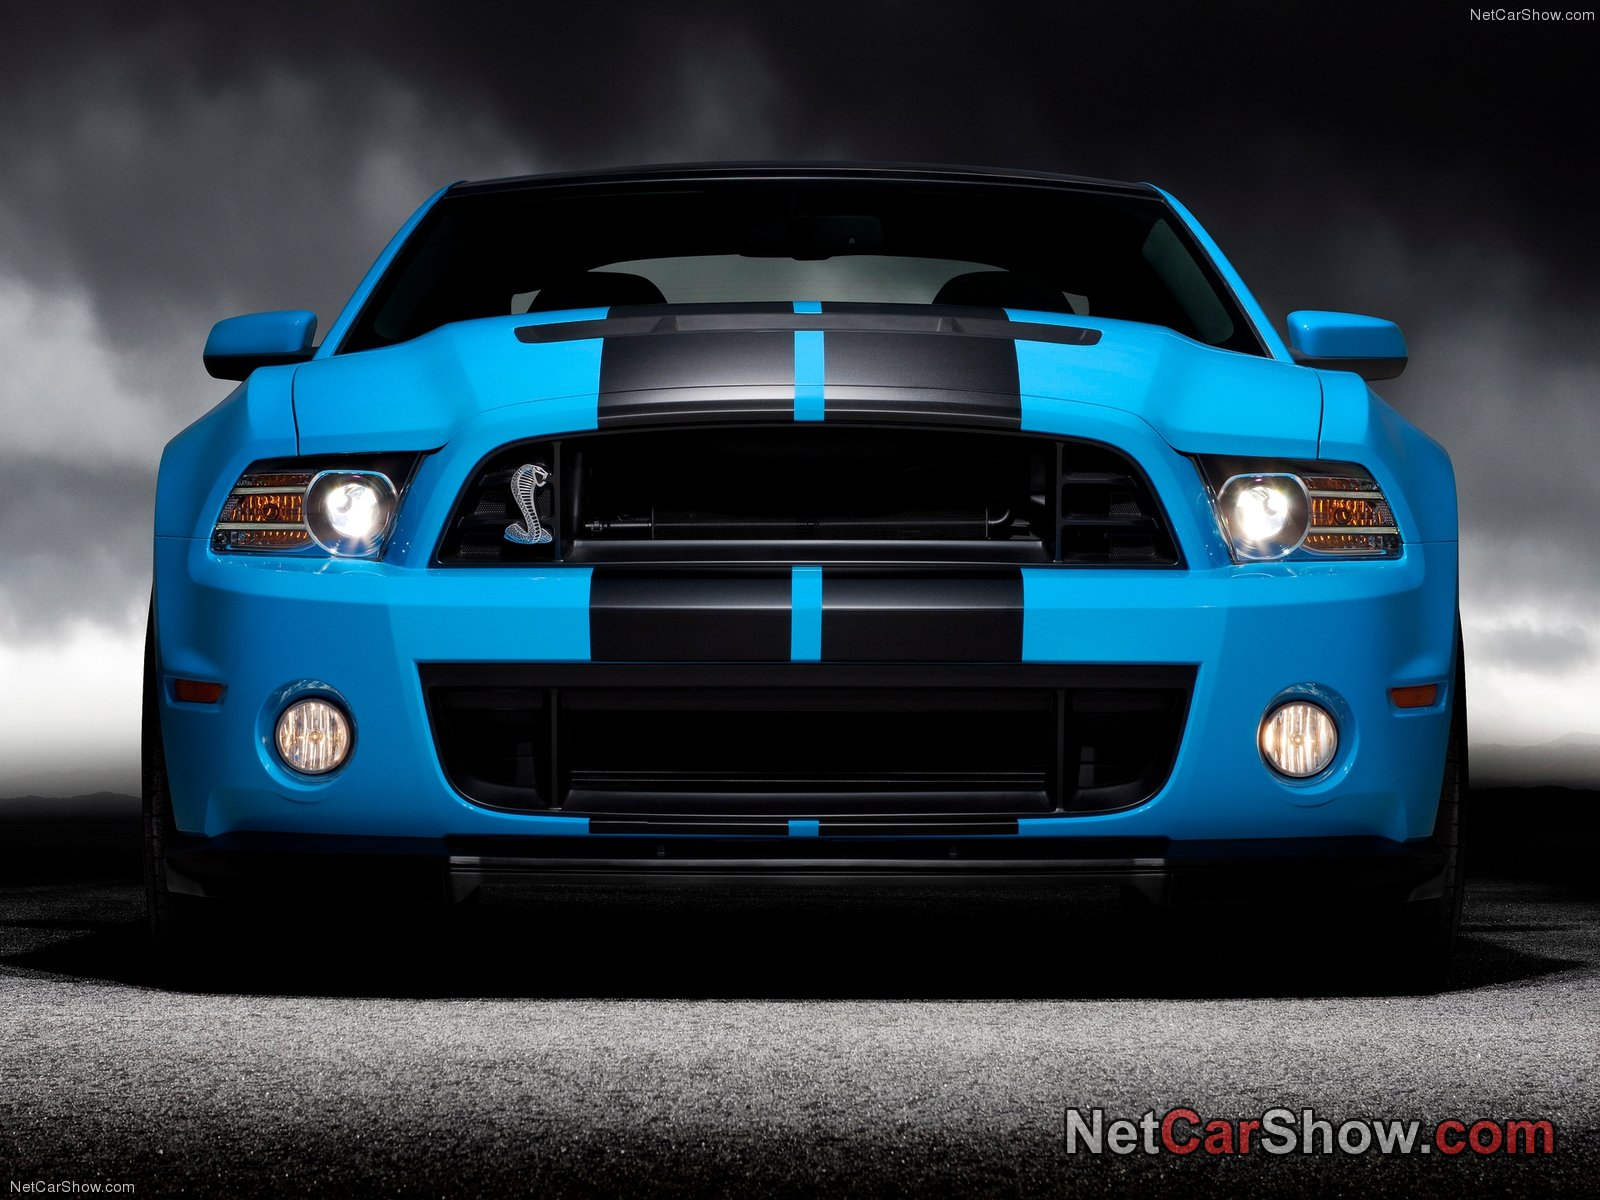 Shelby mustangs 20 pictures of new shelby mustang gt500 - Wallpaper mustang shelby gt500 ...